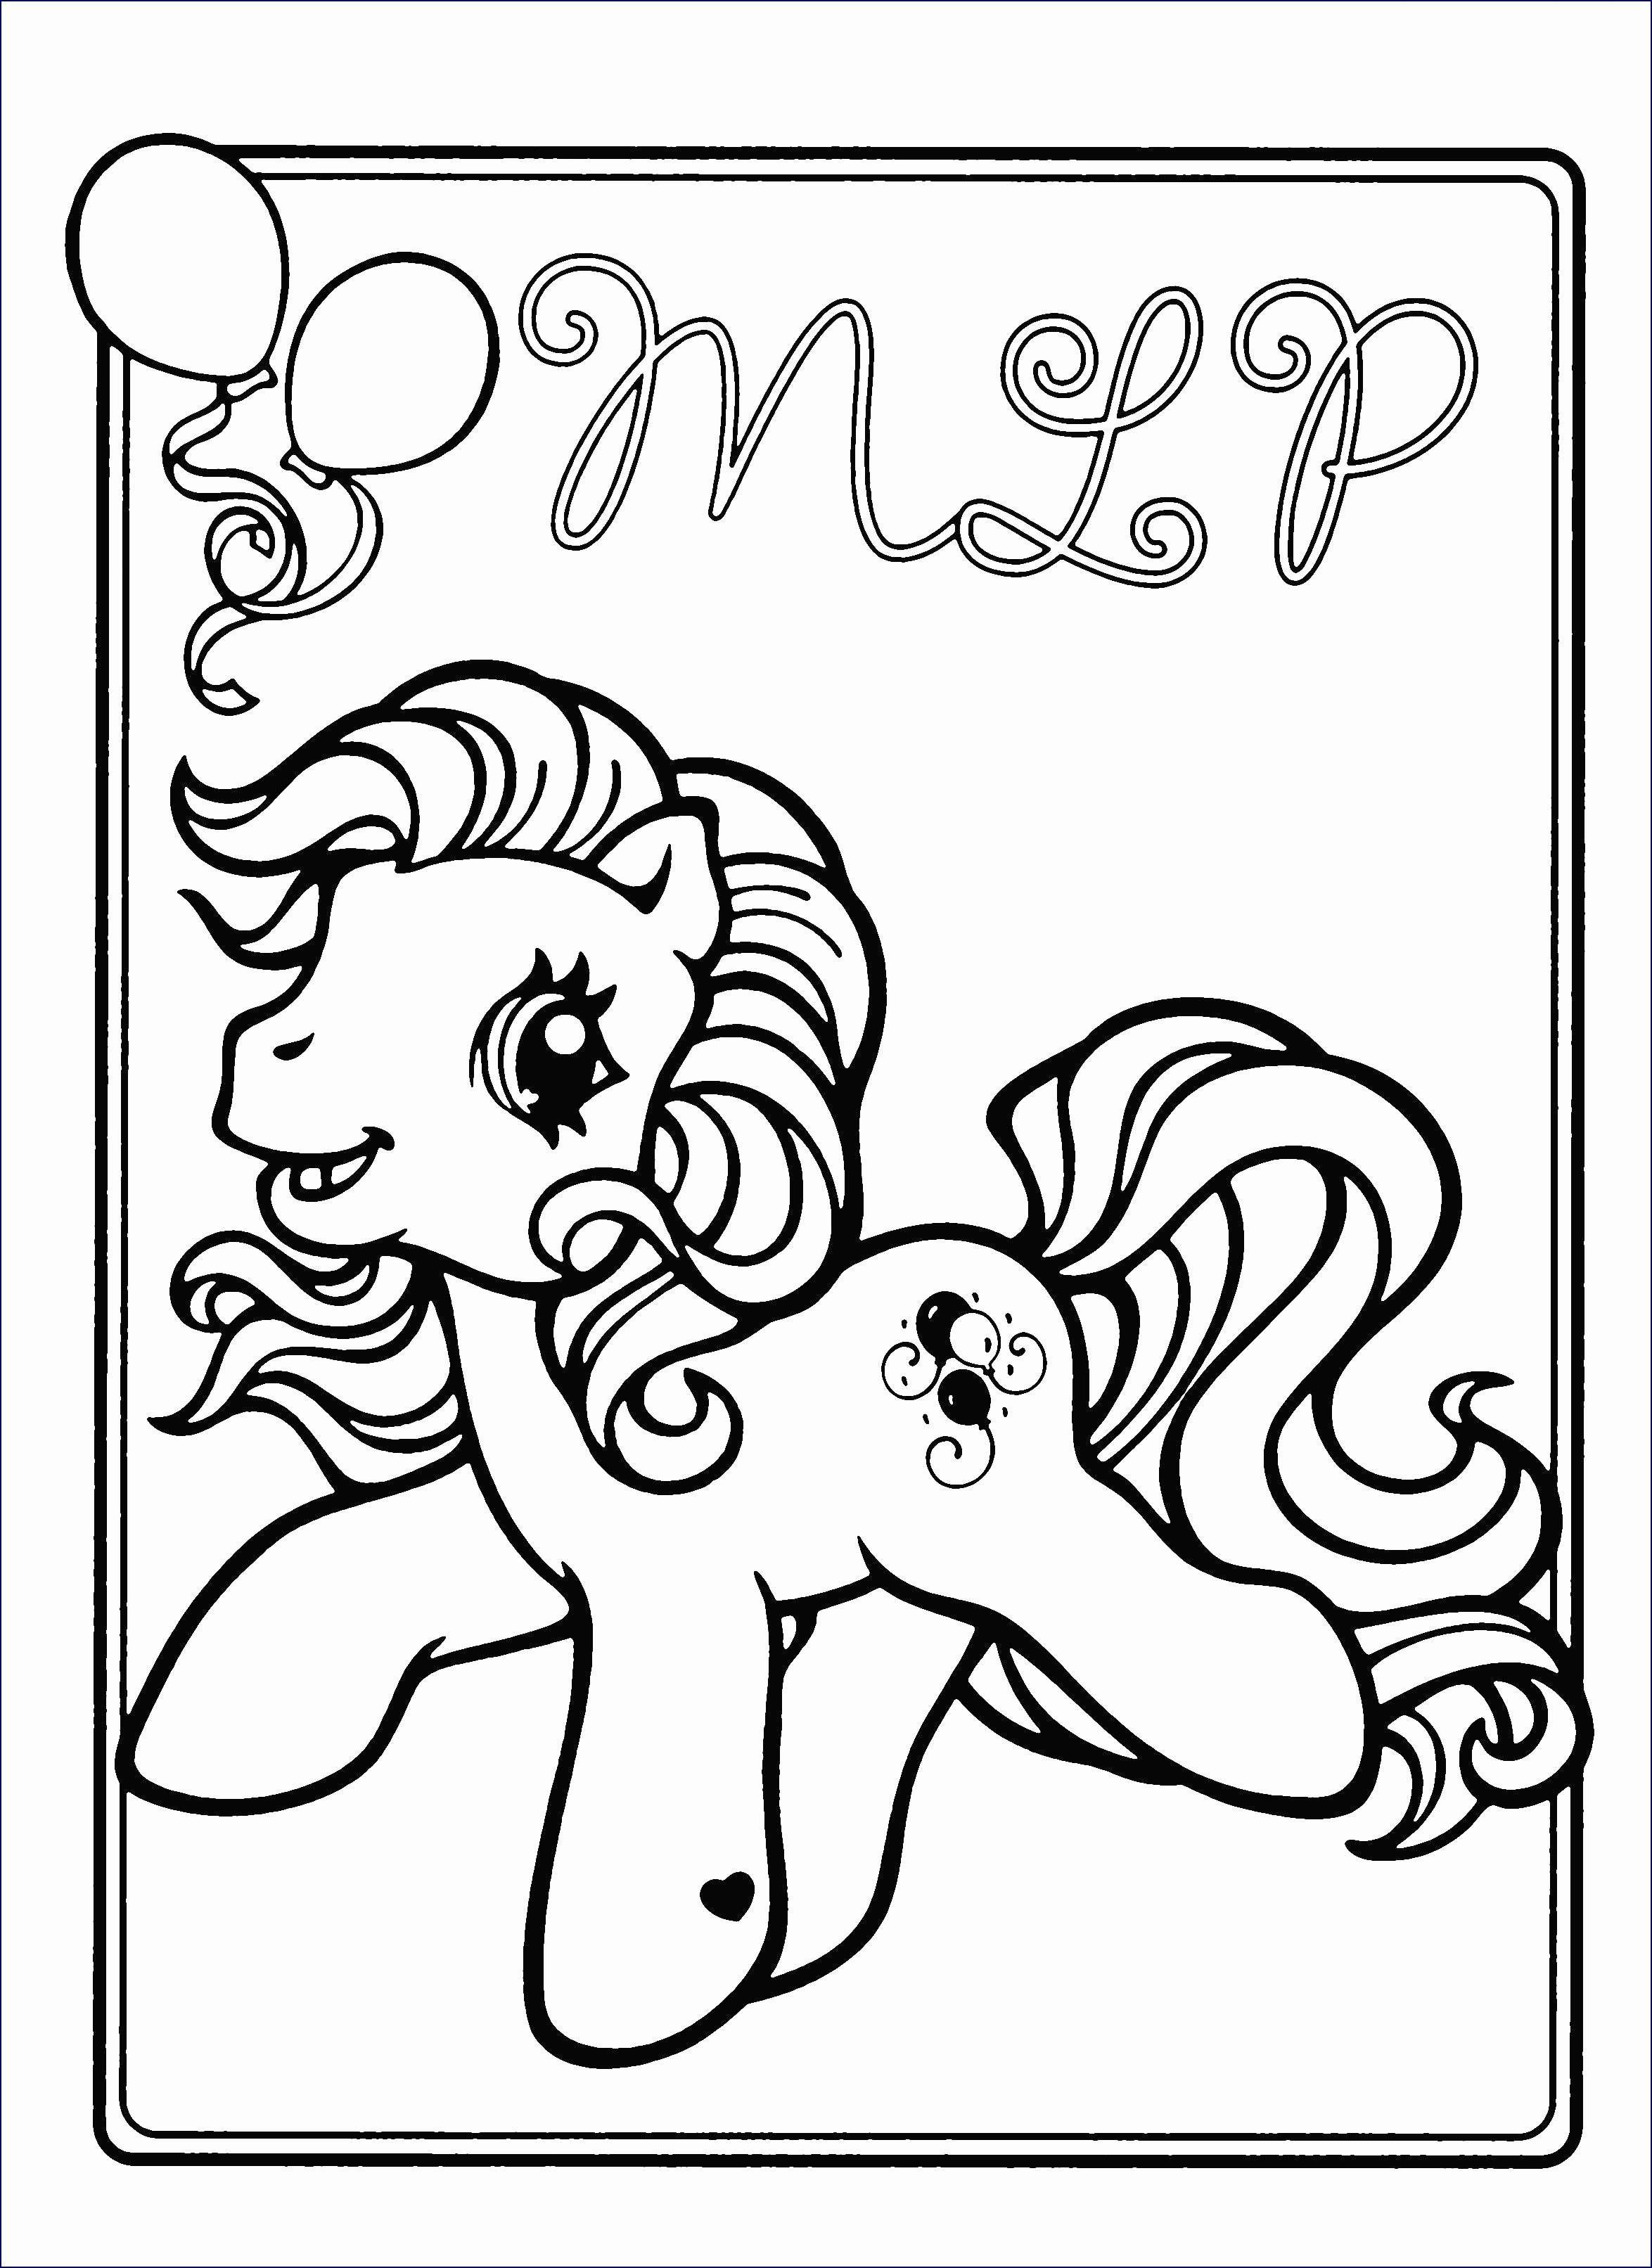 My Little Pony Friendship is Magic Ausmalbilder Einzigartig Beautiful My Little Pony Coloring Pages Coloring Pages Genial Stock